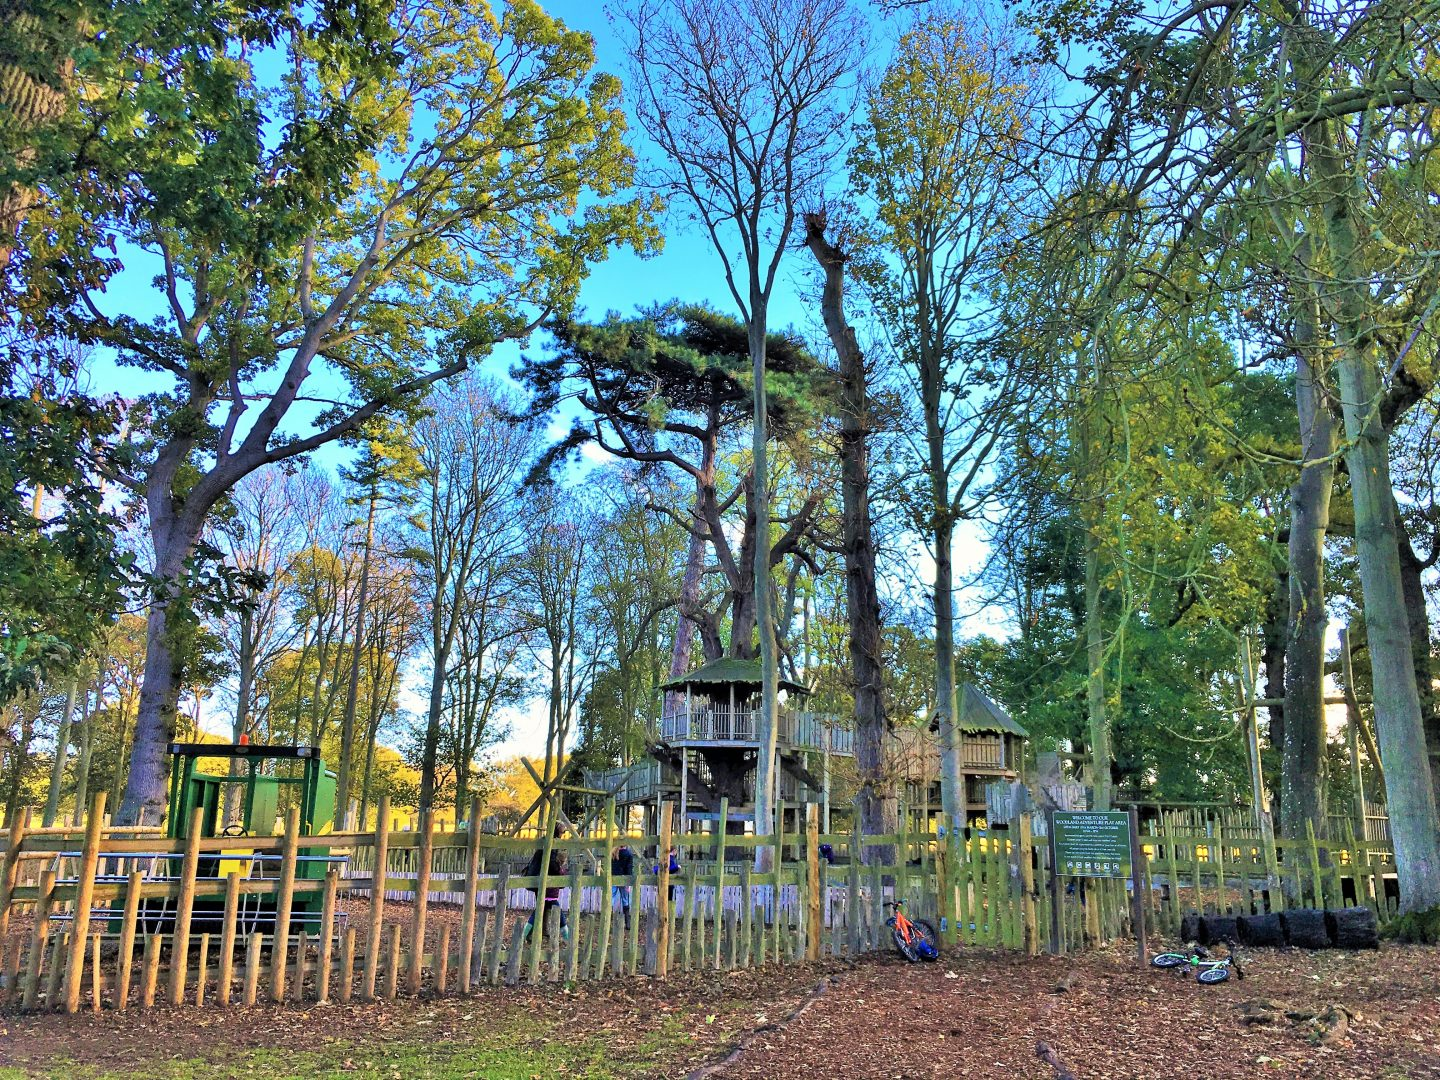 The adventure playground at Holkham Hall, North Norfolk short break